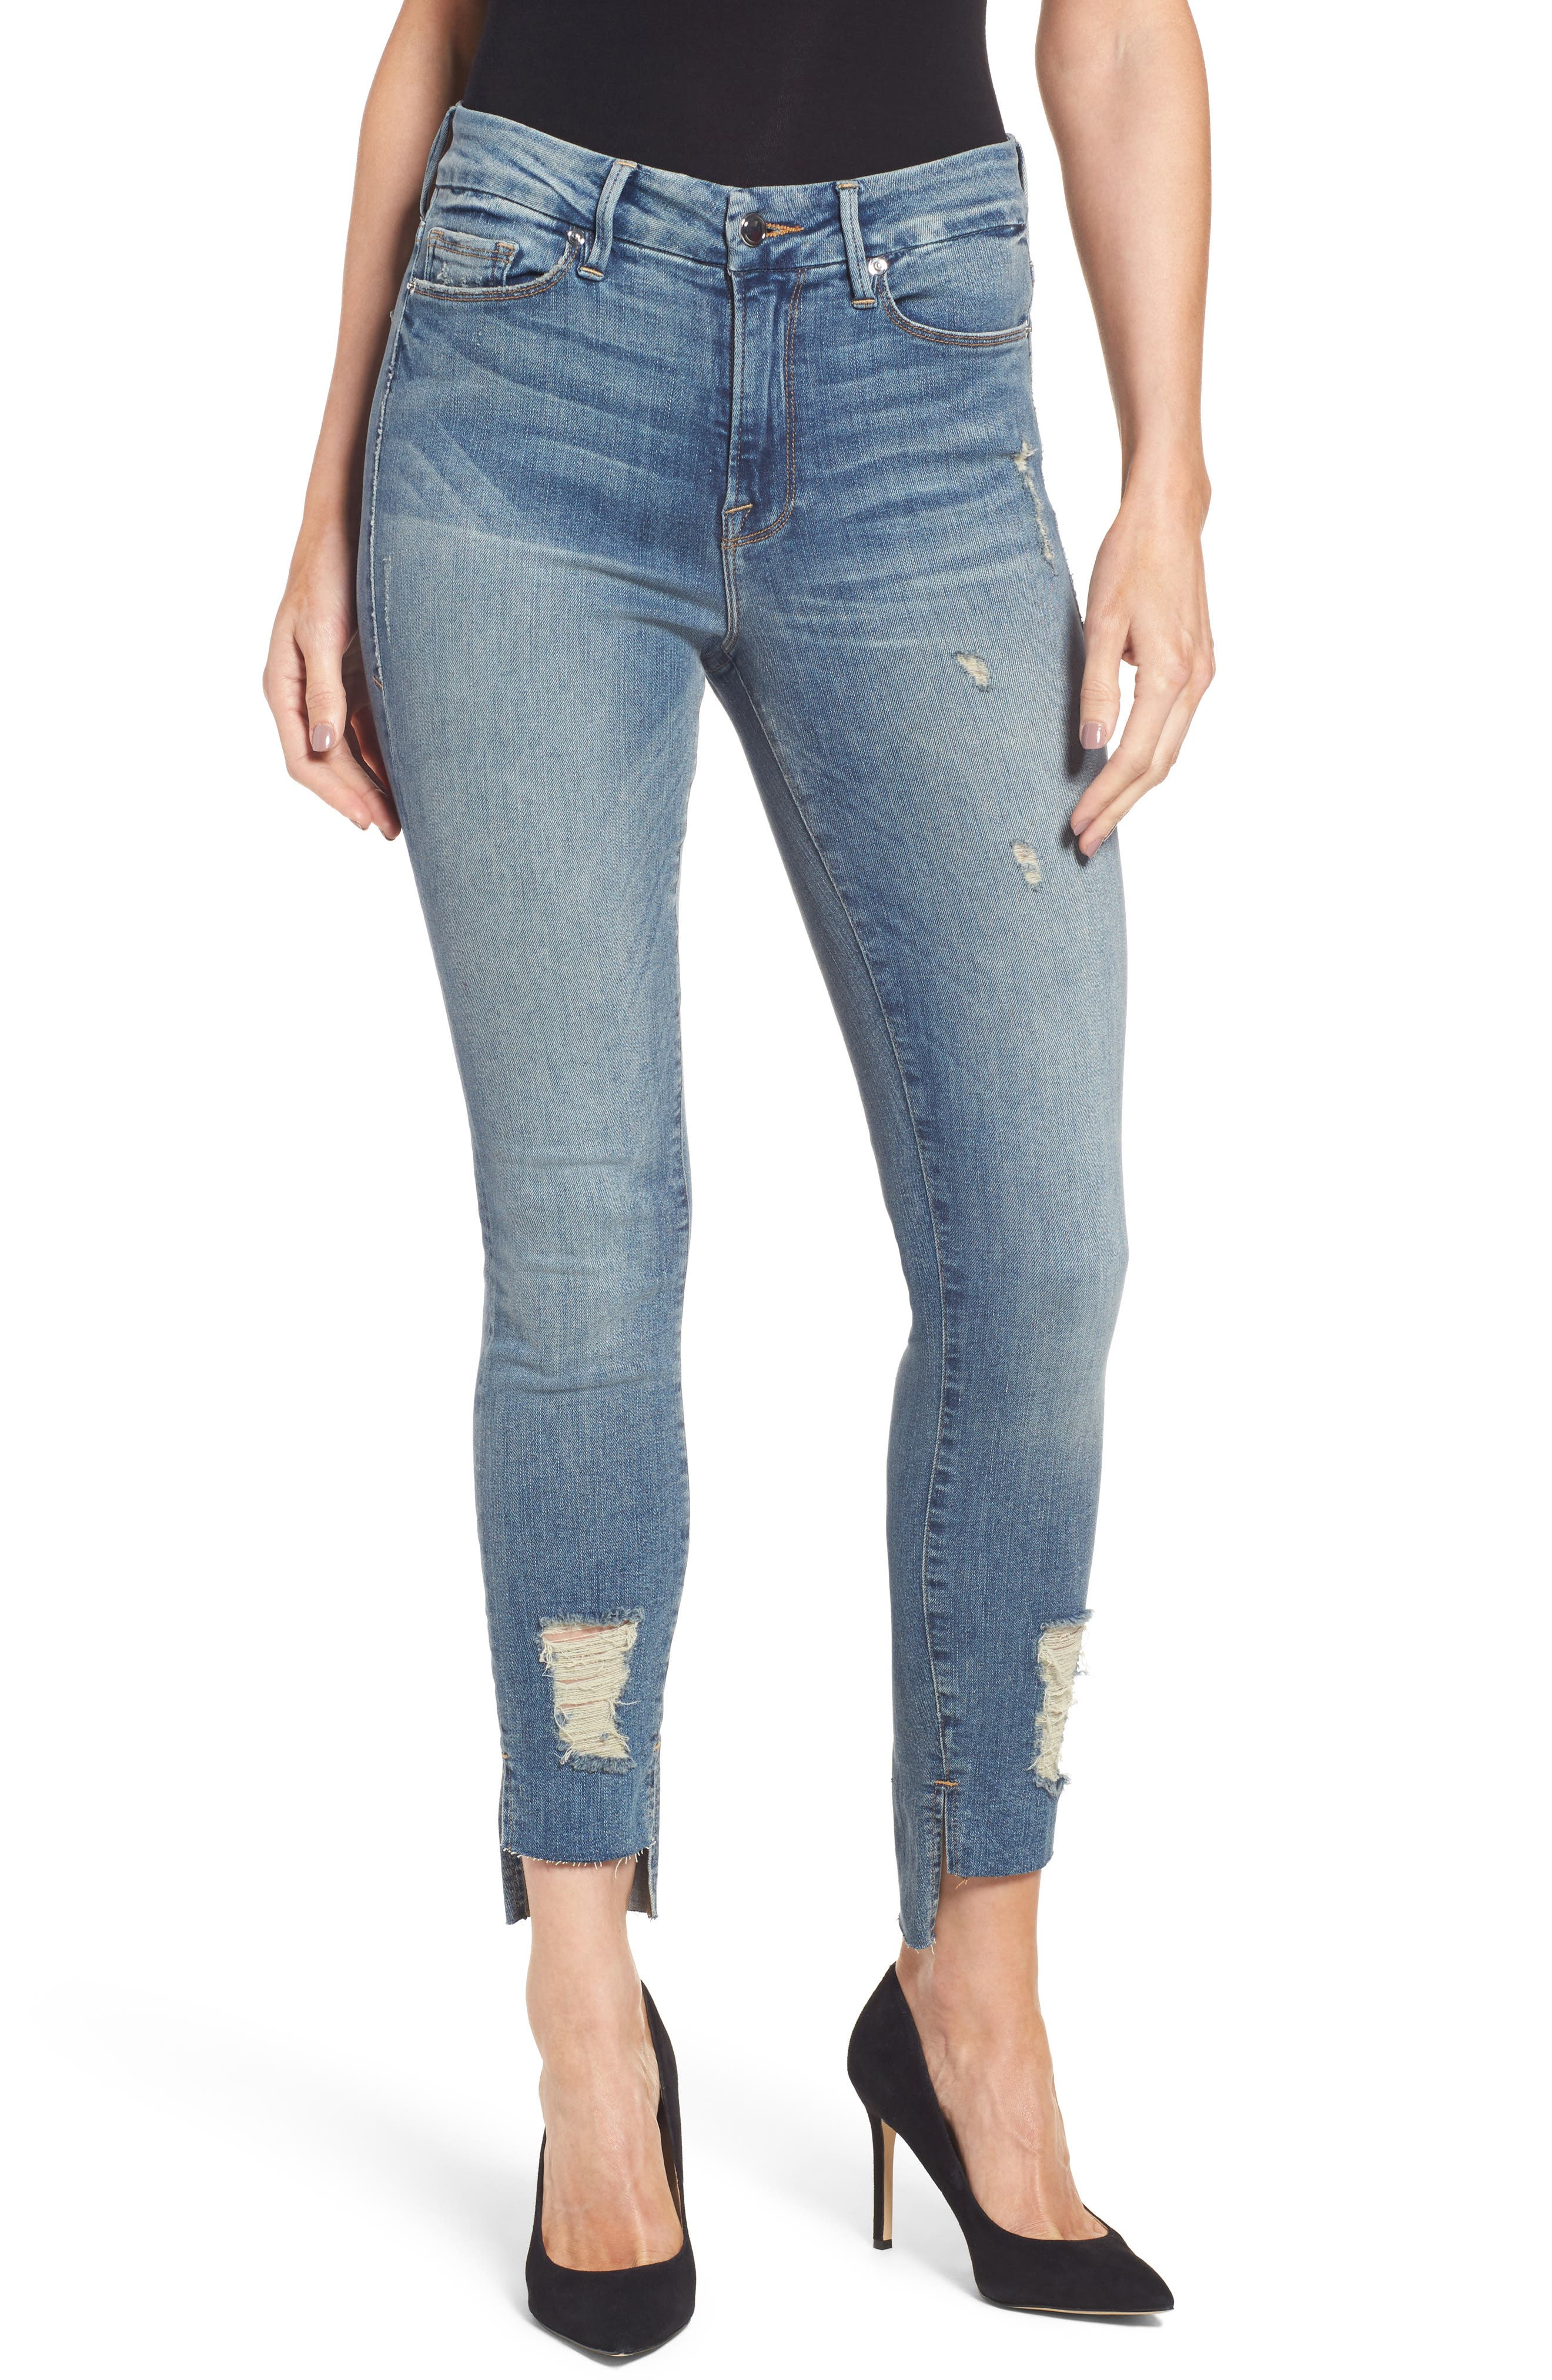 Alternate Image 1 Selected - Good American Good Legs High Waist Skinny Jeans (Blue 082) (Extended Sizes)